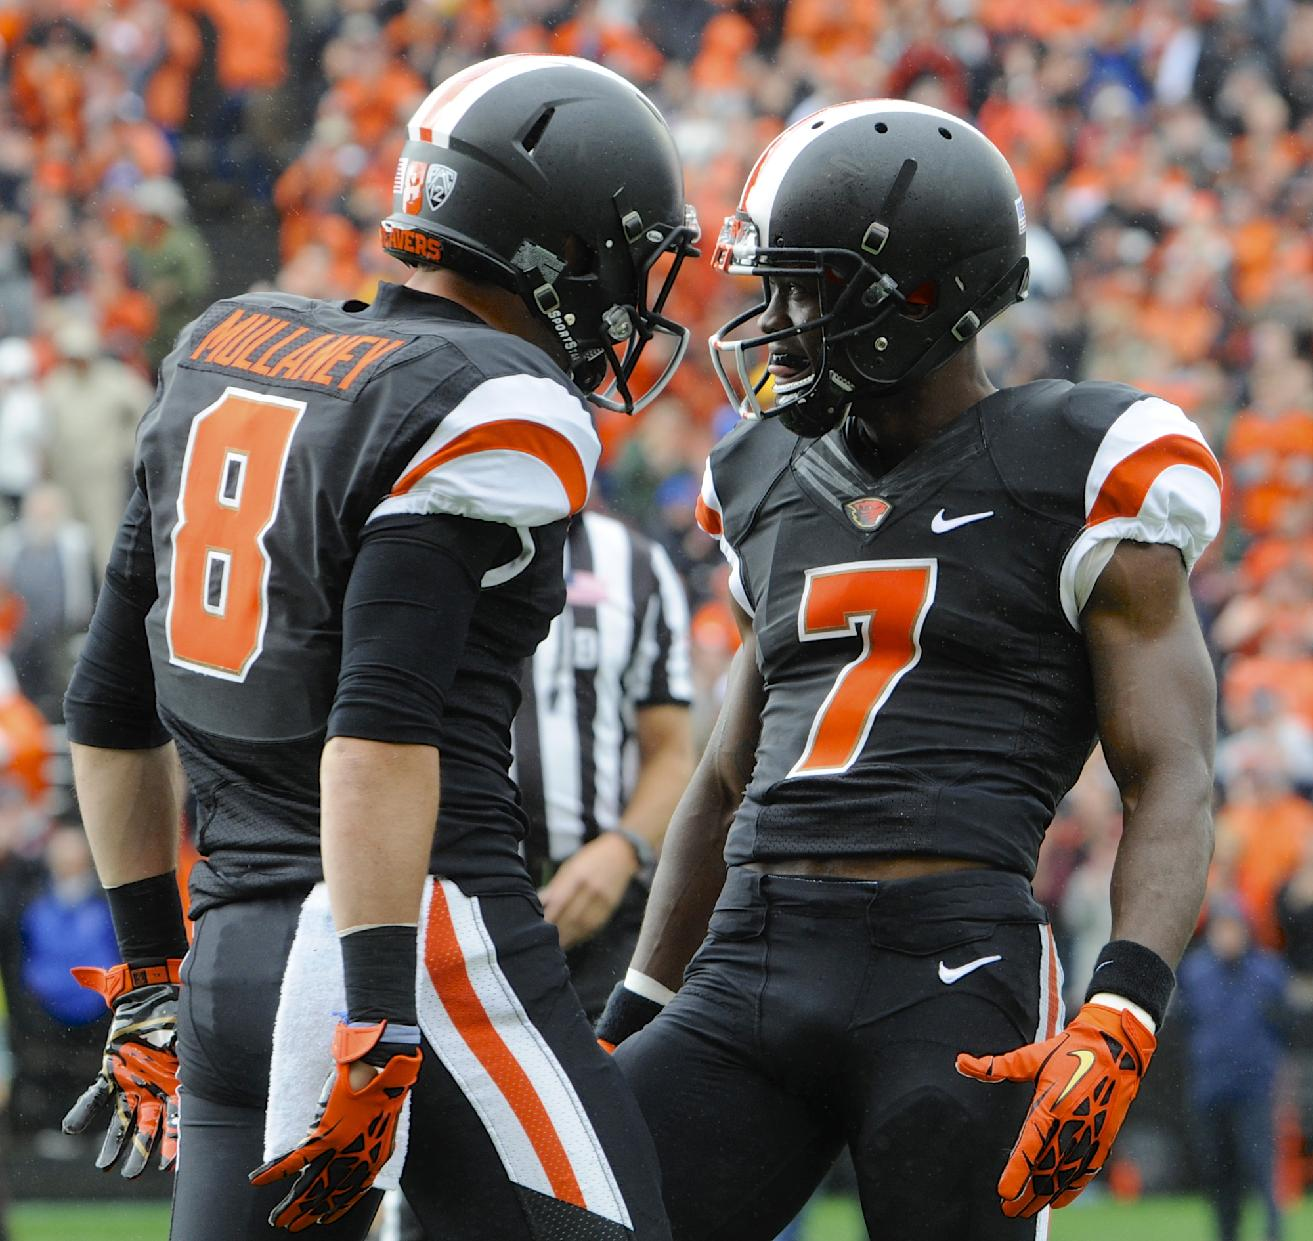 Oregon State's Brandin Cooks (7) celebrates his catch against Colorado with Richard Mullaney (8) in the first half of an NCAA college football game in Corvallis, Ore., Saturday, Sept 28, 2013